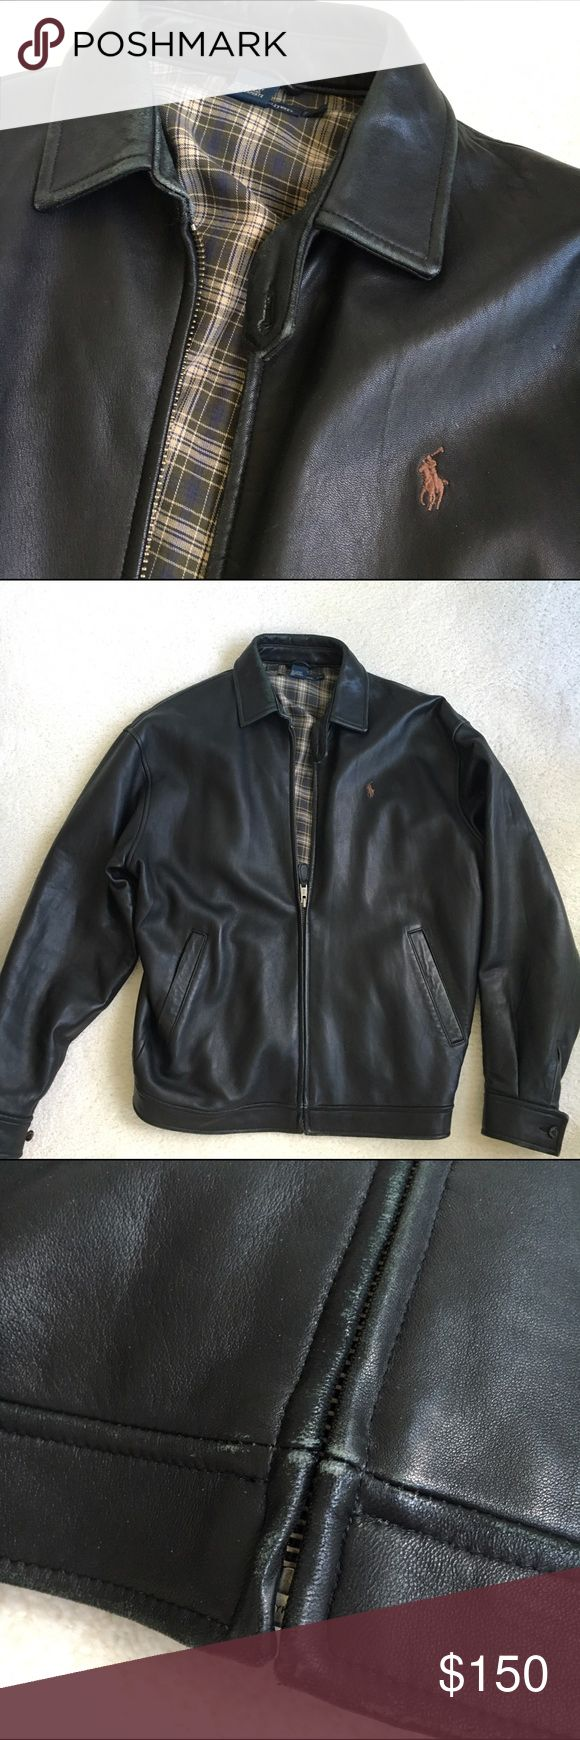 Ralph Lauren Leather jacket Black leather jacket with tan and black plaid lining and brown polo horse logo. Some wear on sleeves, collar, and bottom front zipper but it looks as if it is supposed to be weathered and natural. Please see pictures. It's in great condition. Ralph Lauren Jackets & Coats Bomber & Varsity